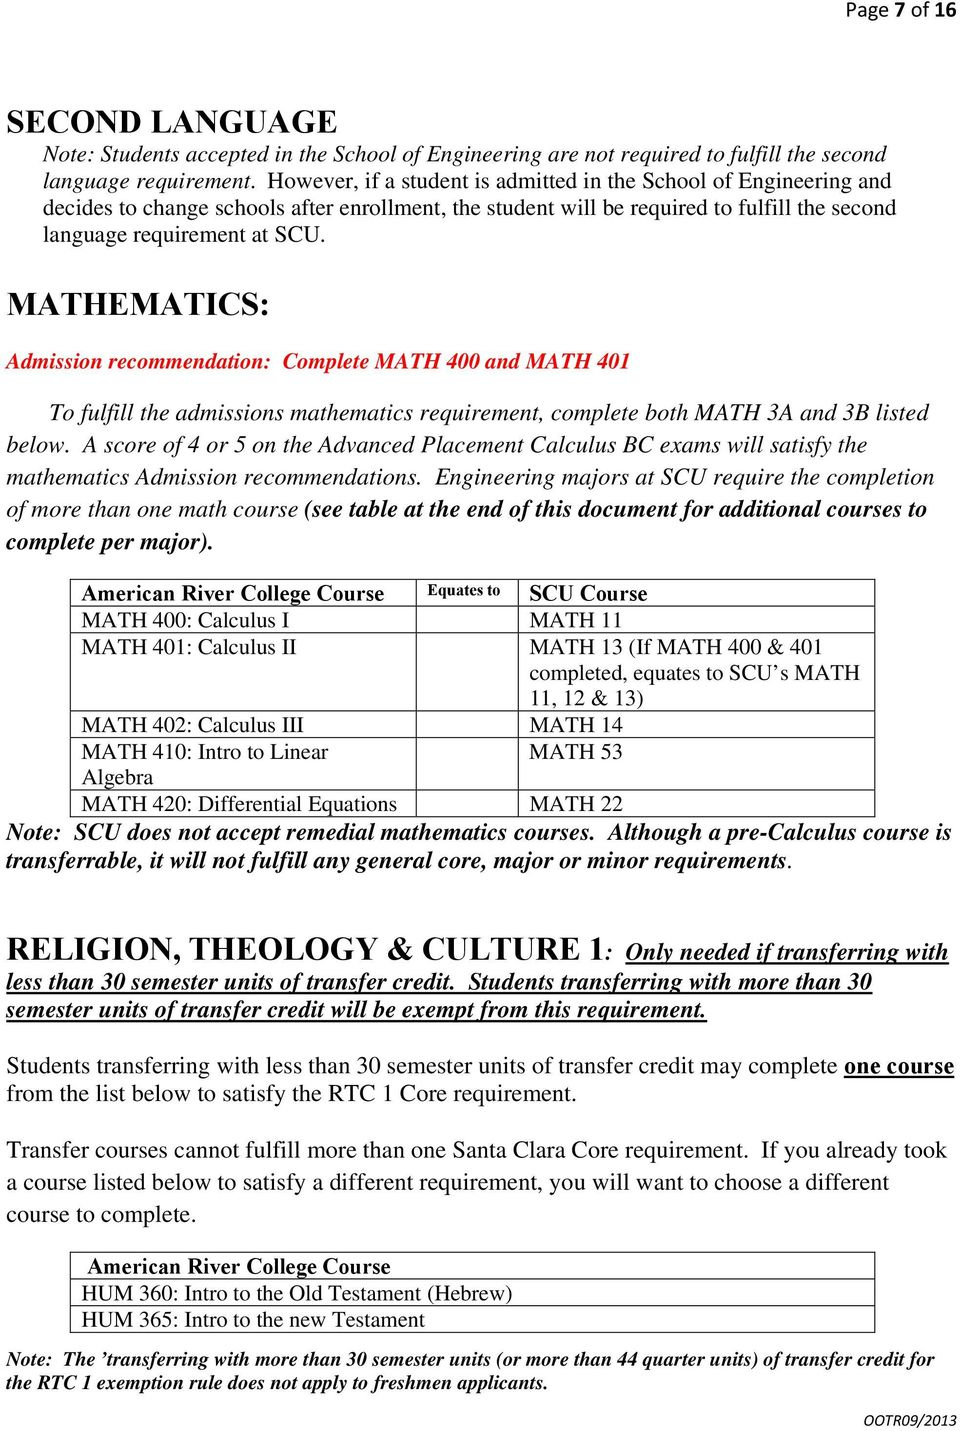 MATHEMATICS: Admission recommendation: Complete MATH 400 and MATH 401 To fulfill the admissions mathematics requirement, complete both MATH 3A and 3B listed below.